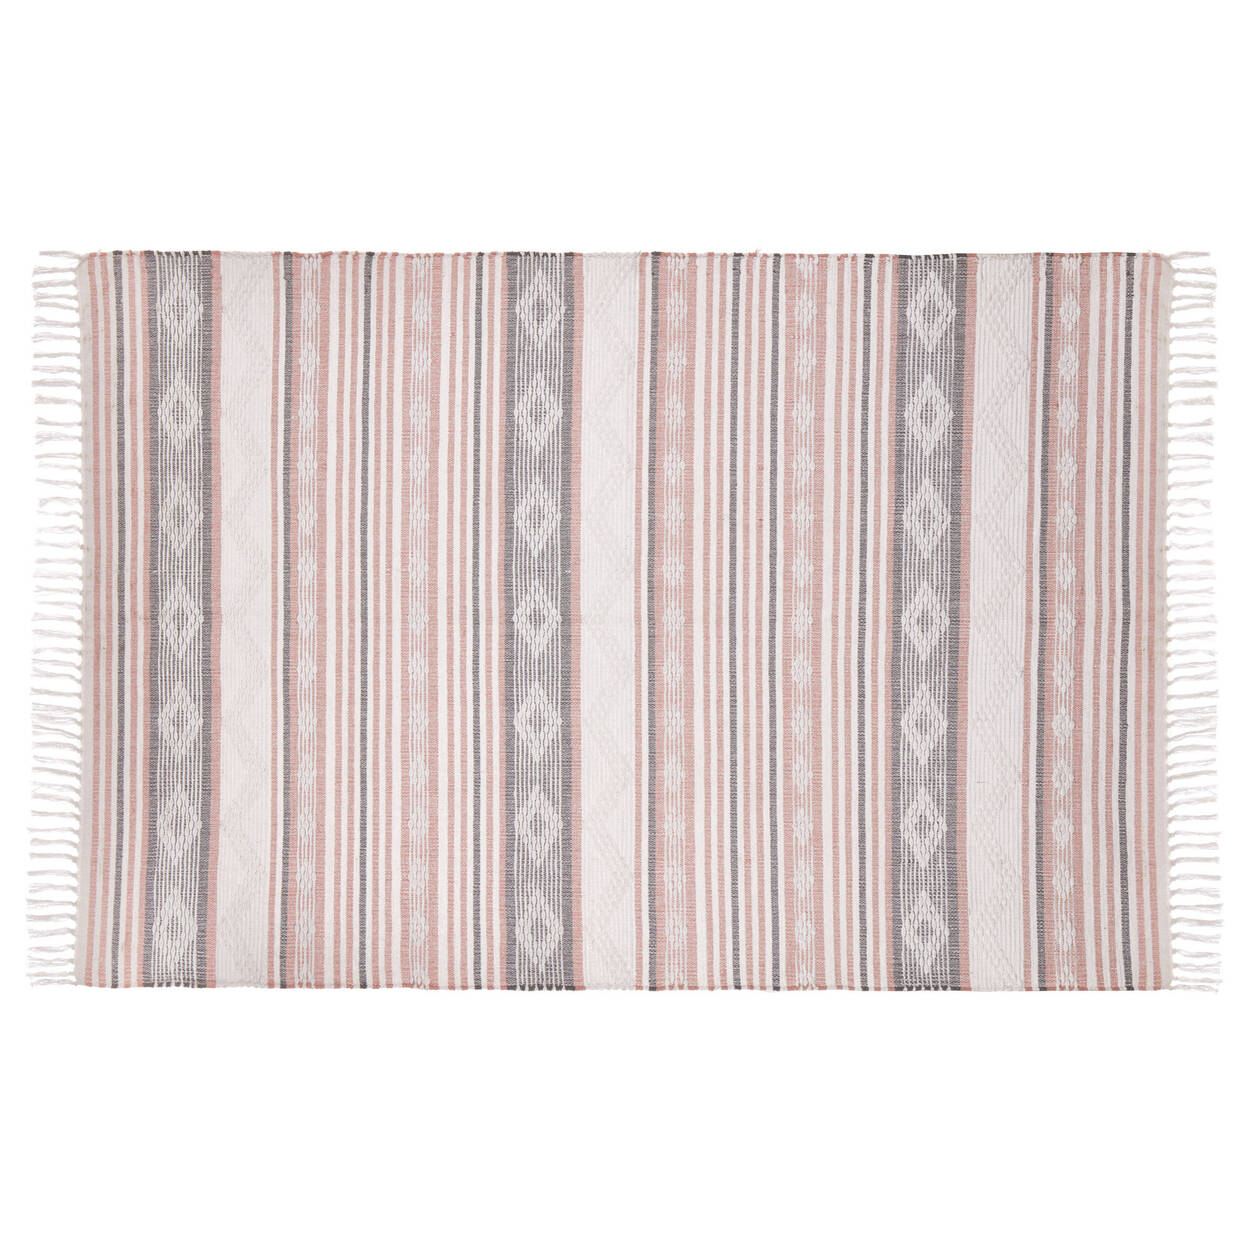 Geometric Striped Rug